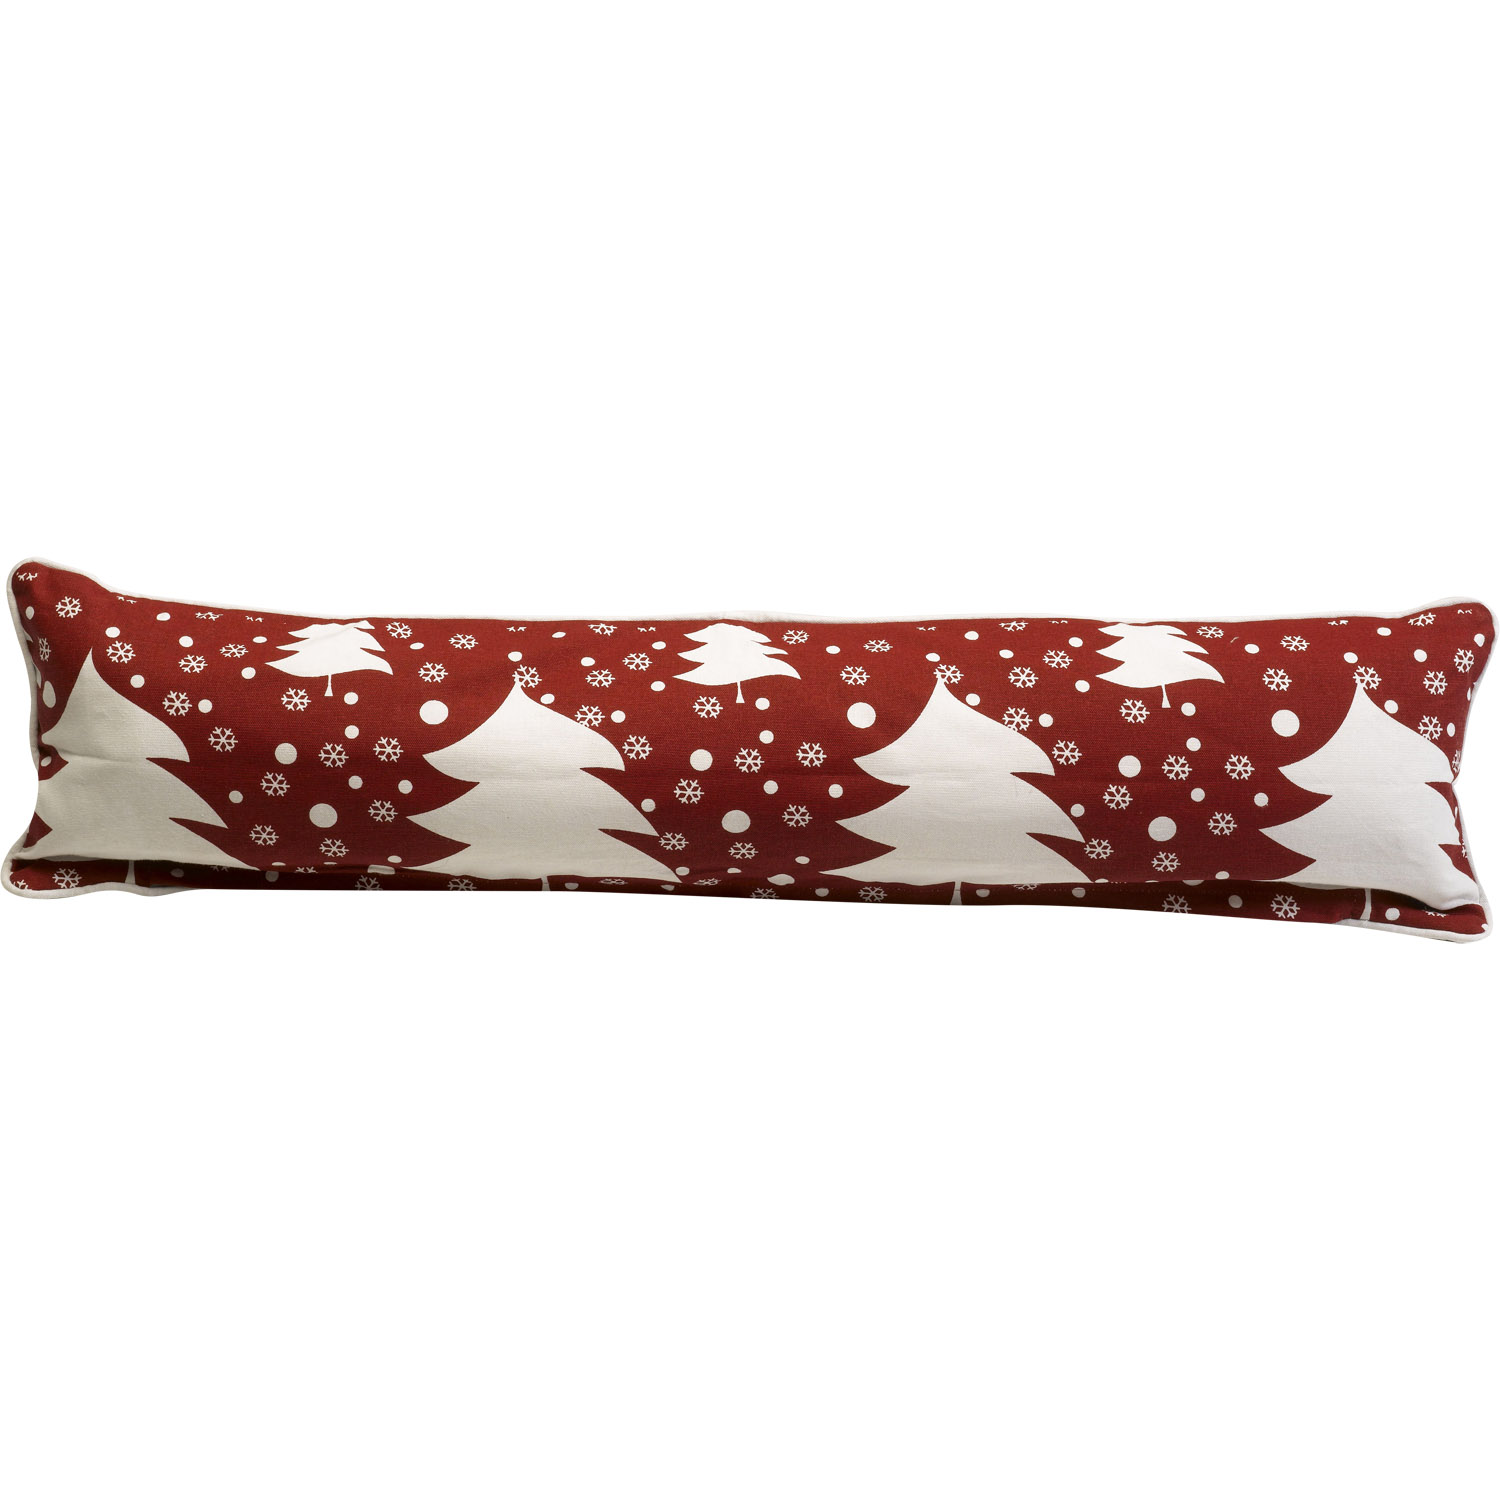 Festive Xmas Draught Excluder Cushion Window Or Door Guard Christmas